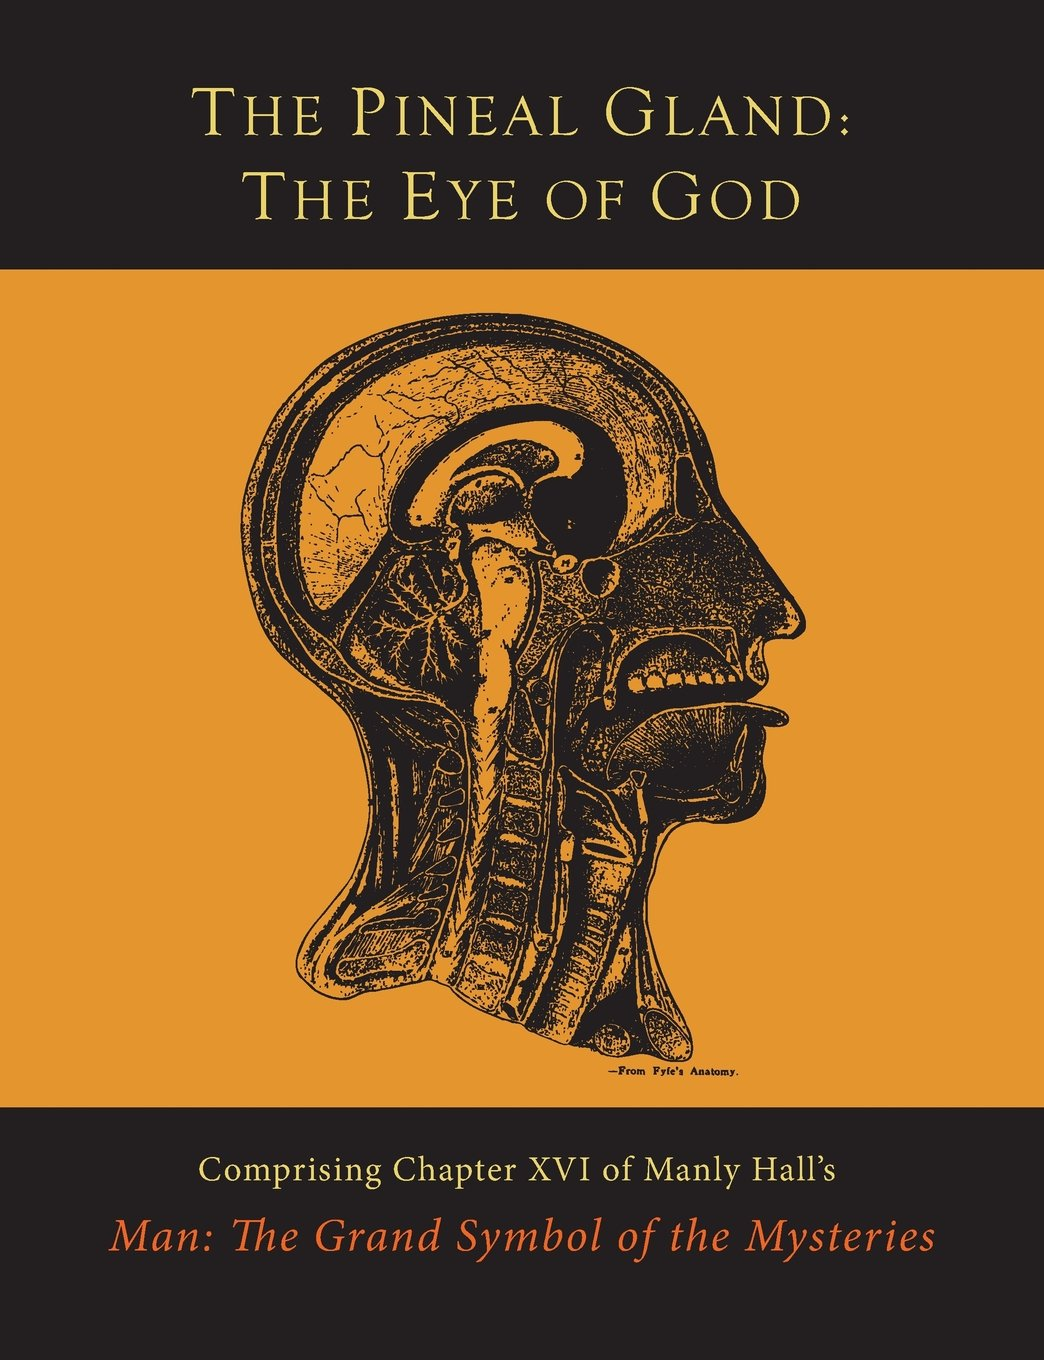 Amazon.com: The Pineal Gland: The Eye of God (9781614278450): Manly ...